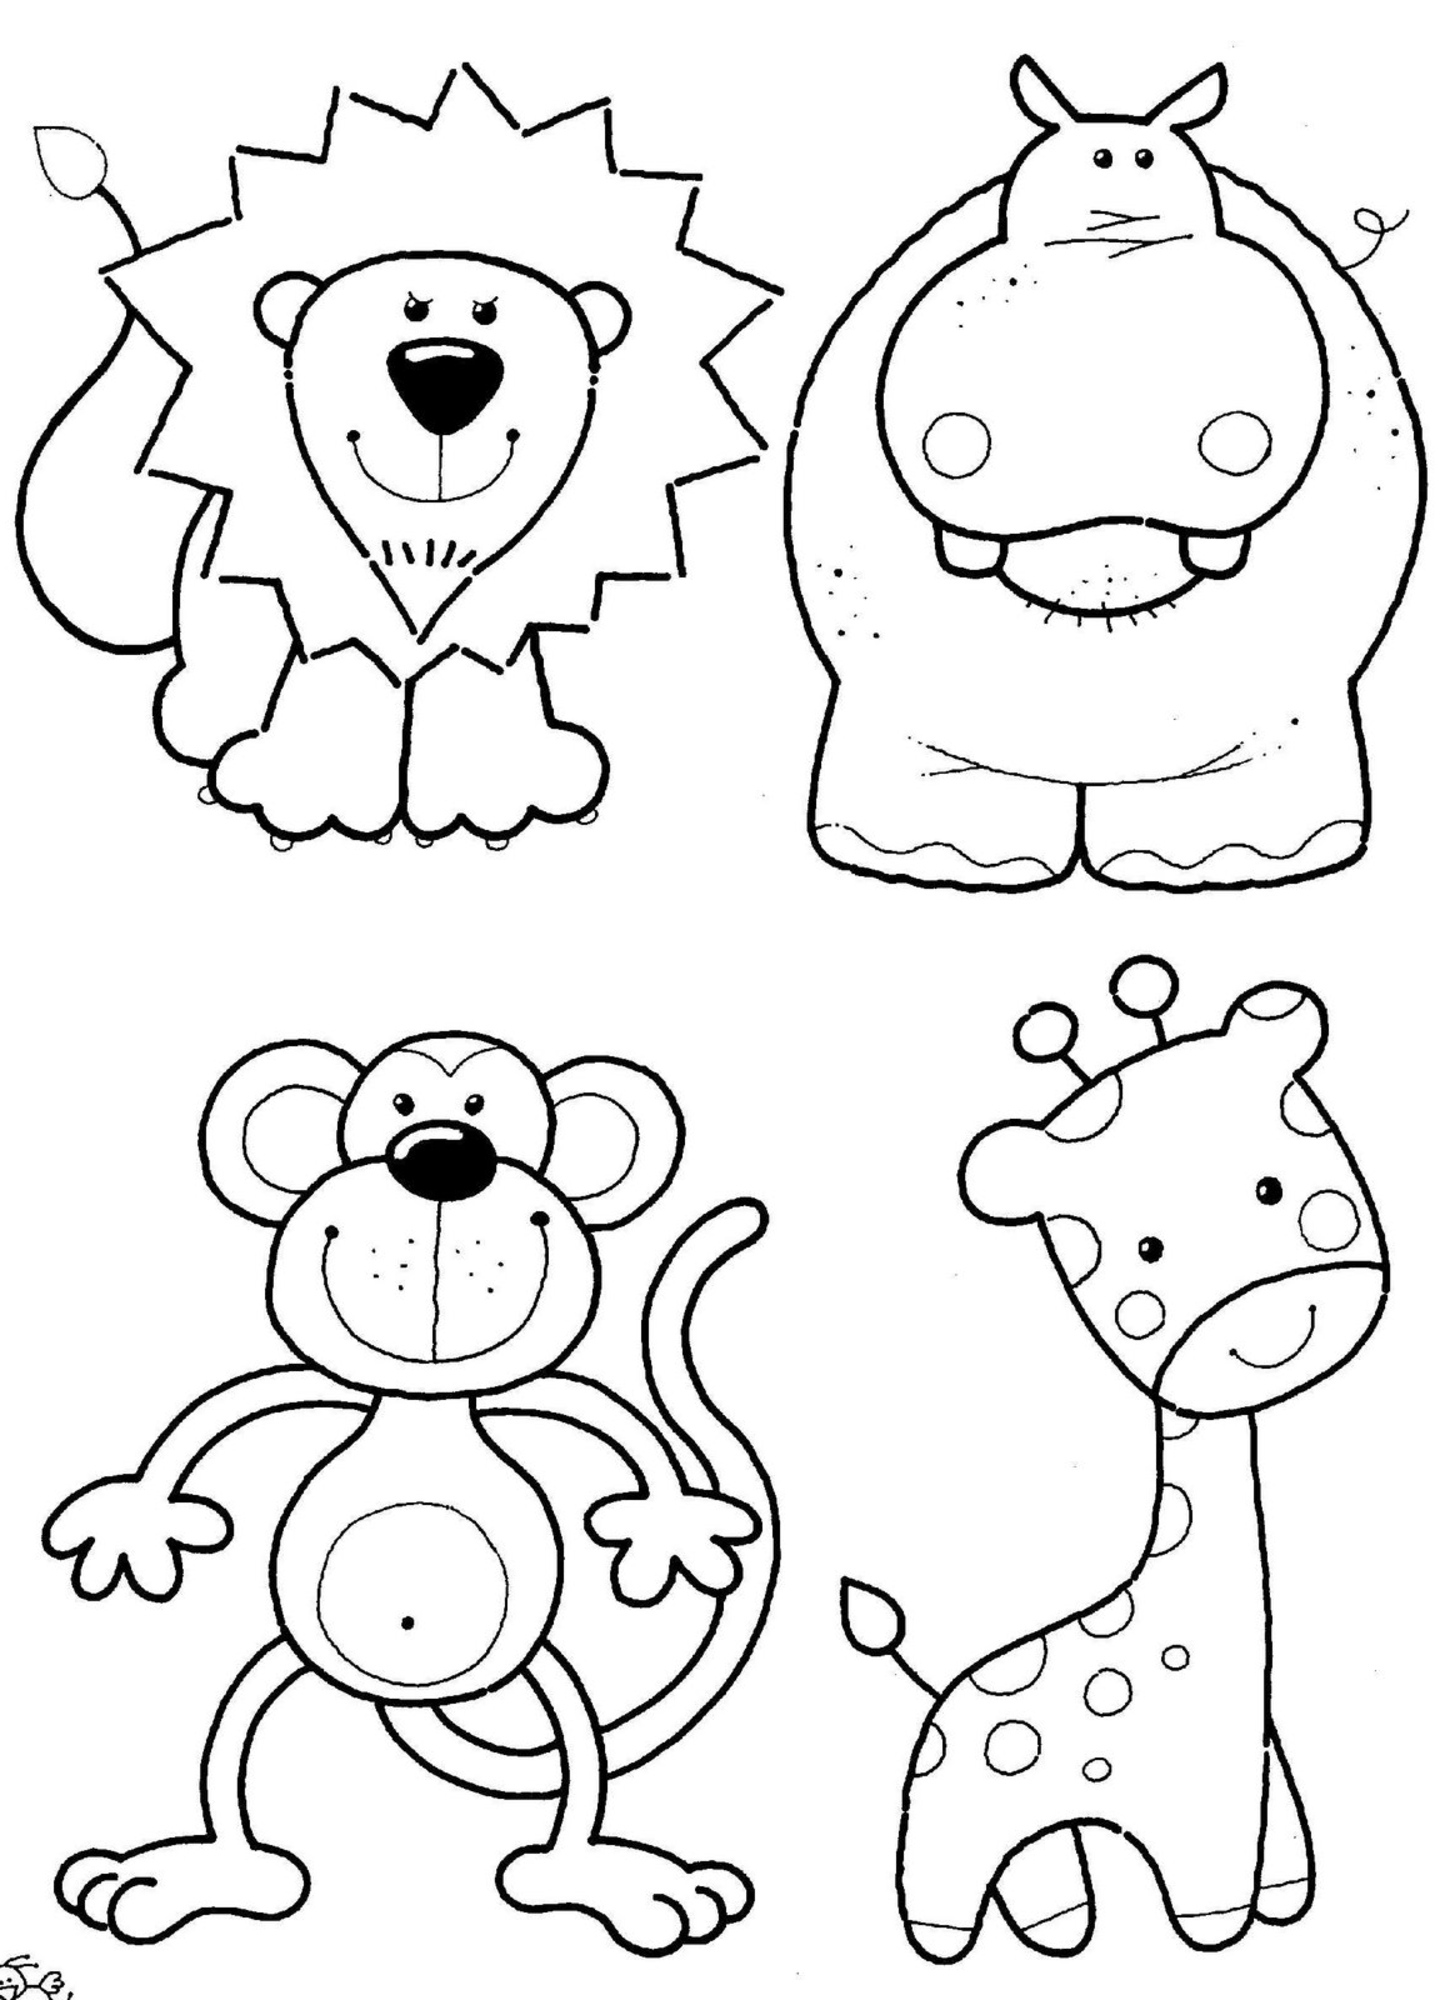 animal color sheet adult coloring pages animals best coloring pages for kids color sheet animal